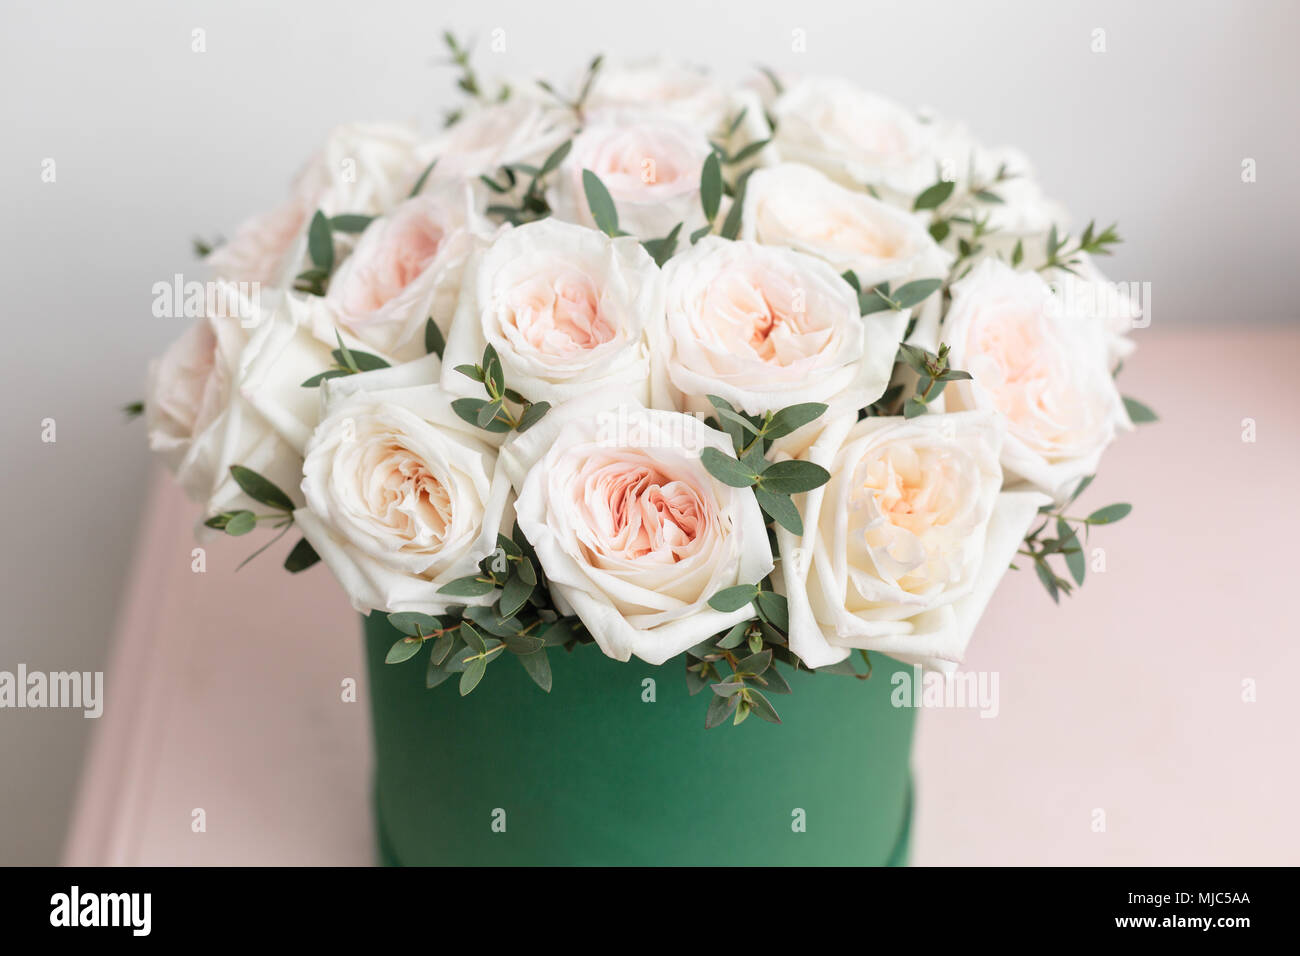 White And Pink Roses Bouquet Of Beautiful Flowers On Wooden Table